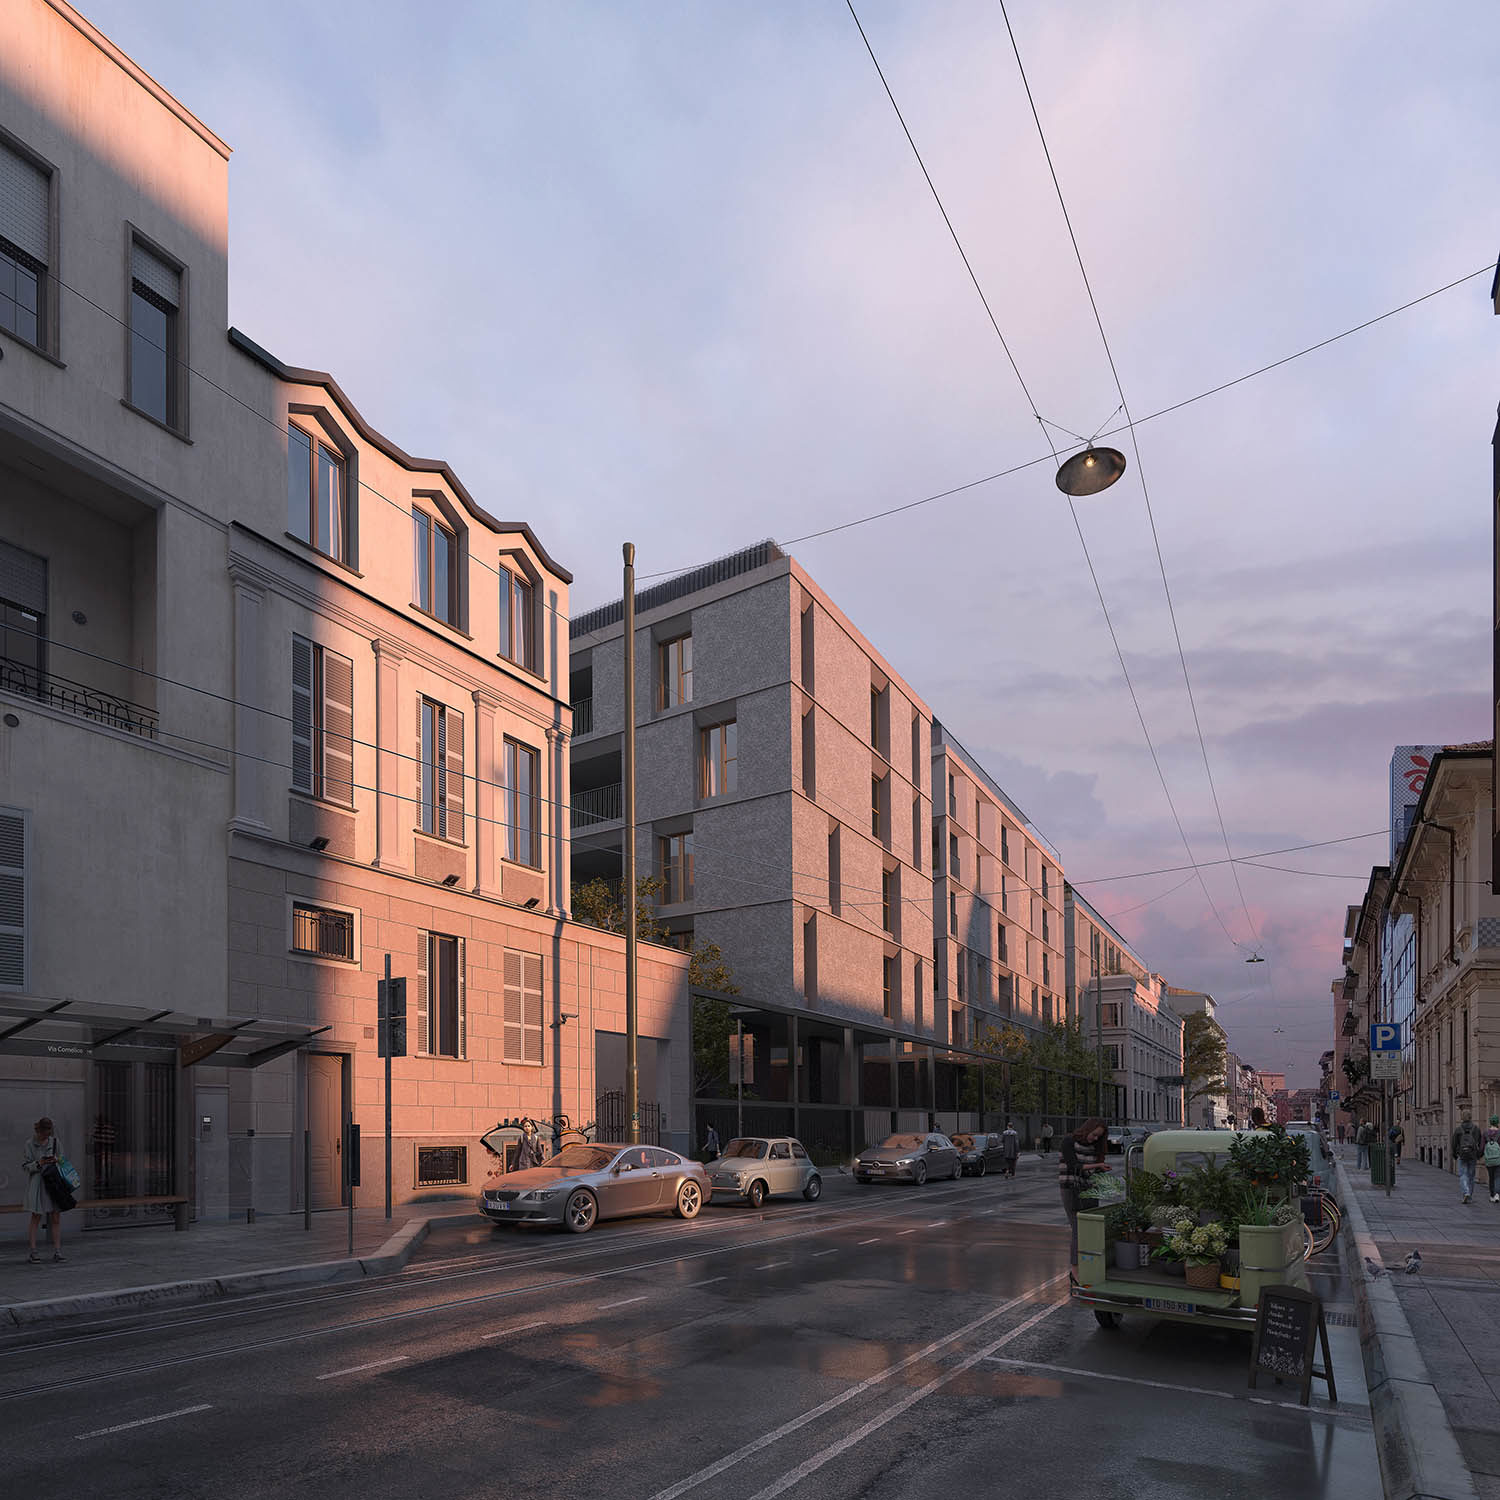 New residential project in Milan-Calzoni Architetti studio, 2019